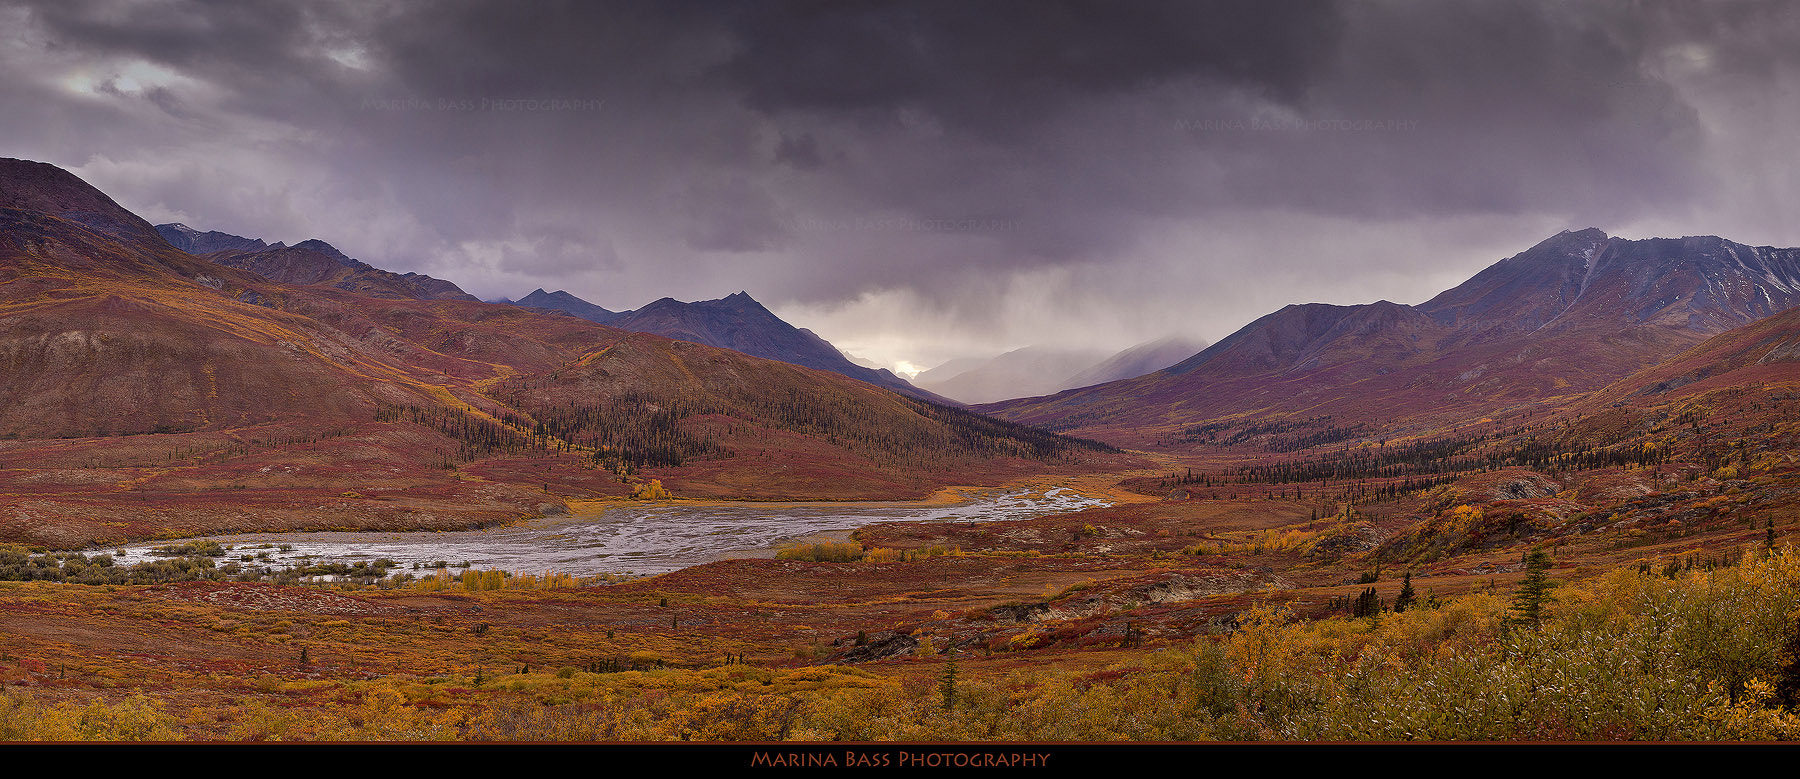 Photograph Yukon Larger Than Life by Marina Bass on 500px